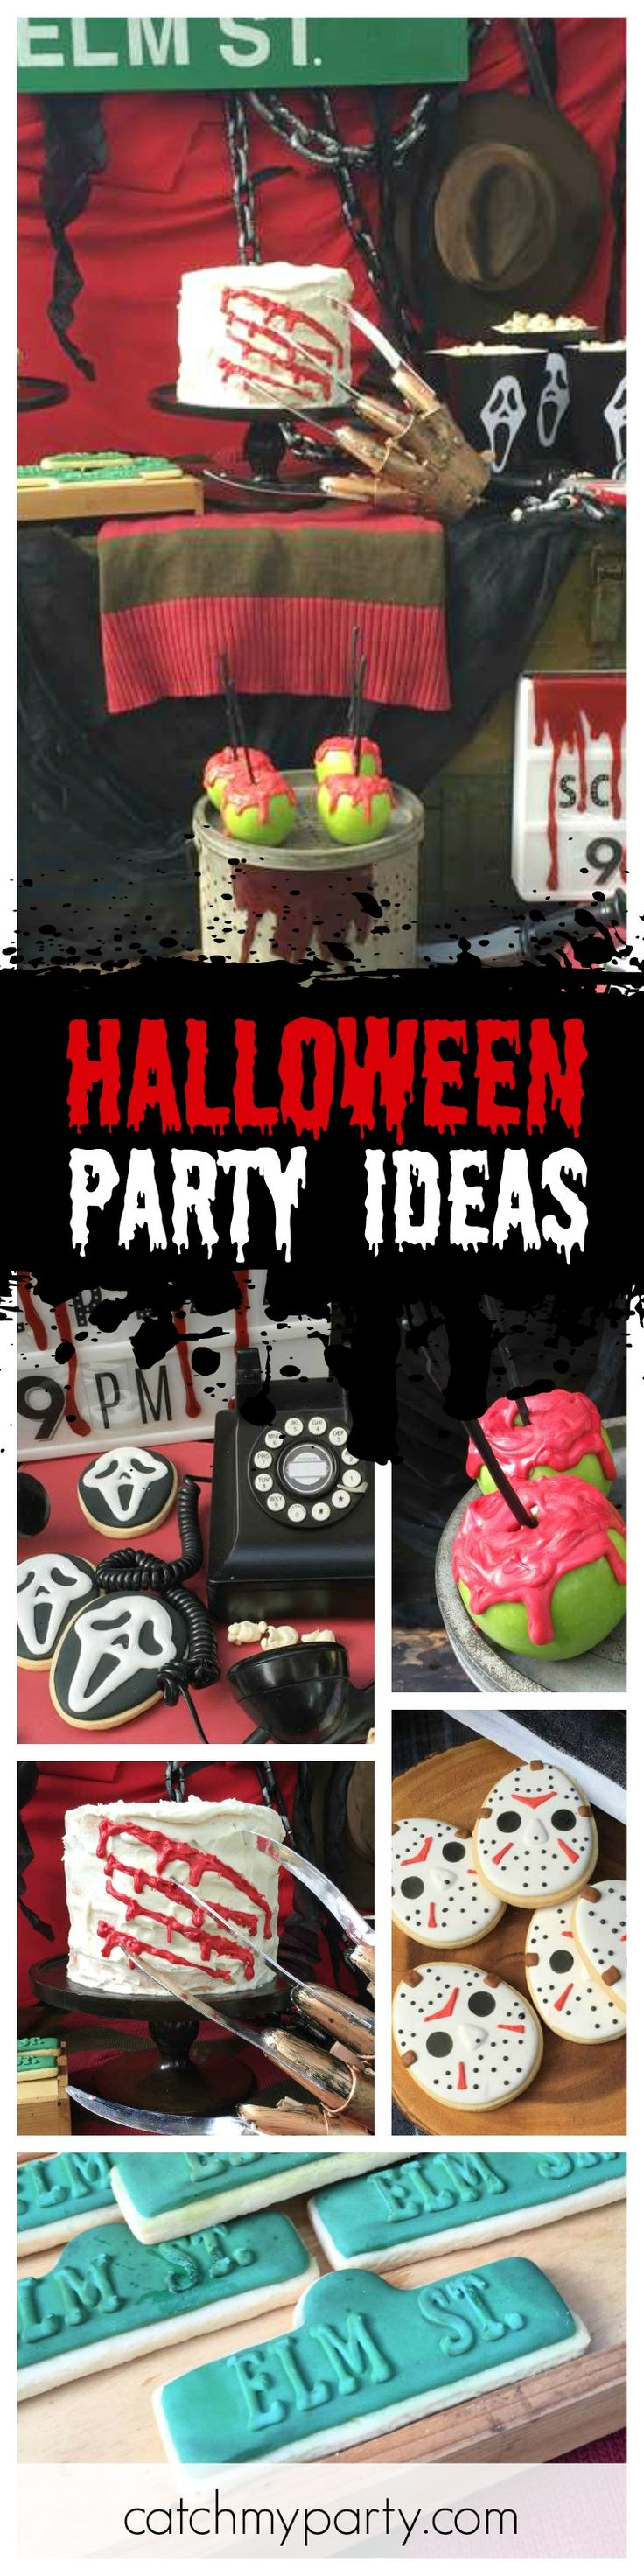 Best 25+ Halloween themed movies ideas on Pinterest | Halloween ...